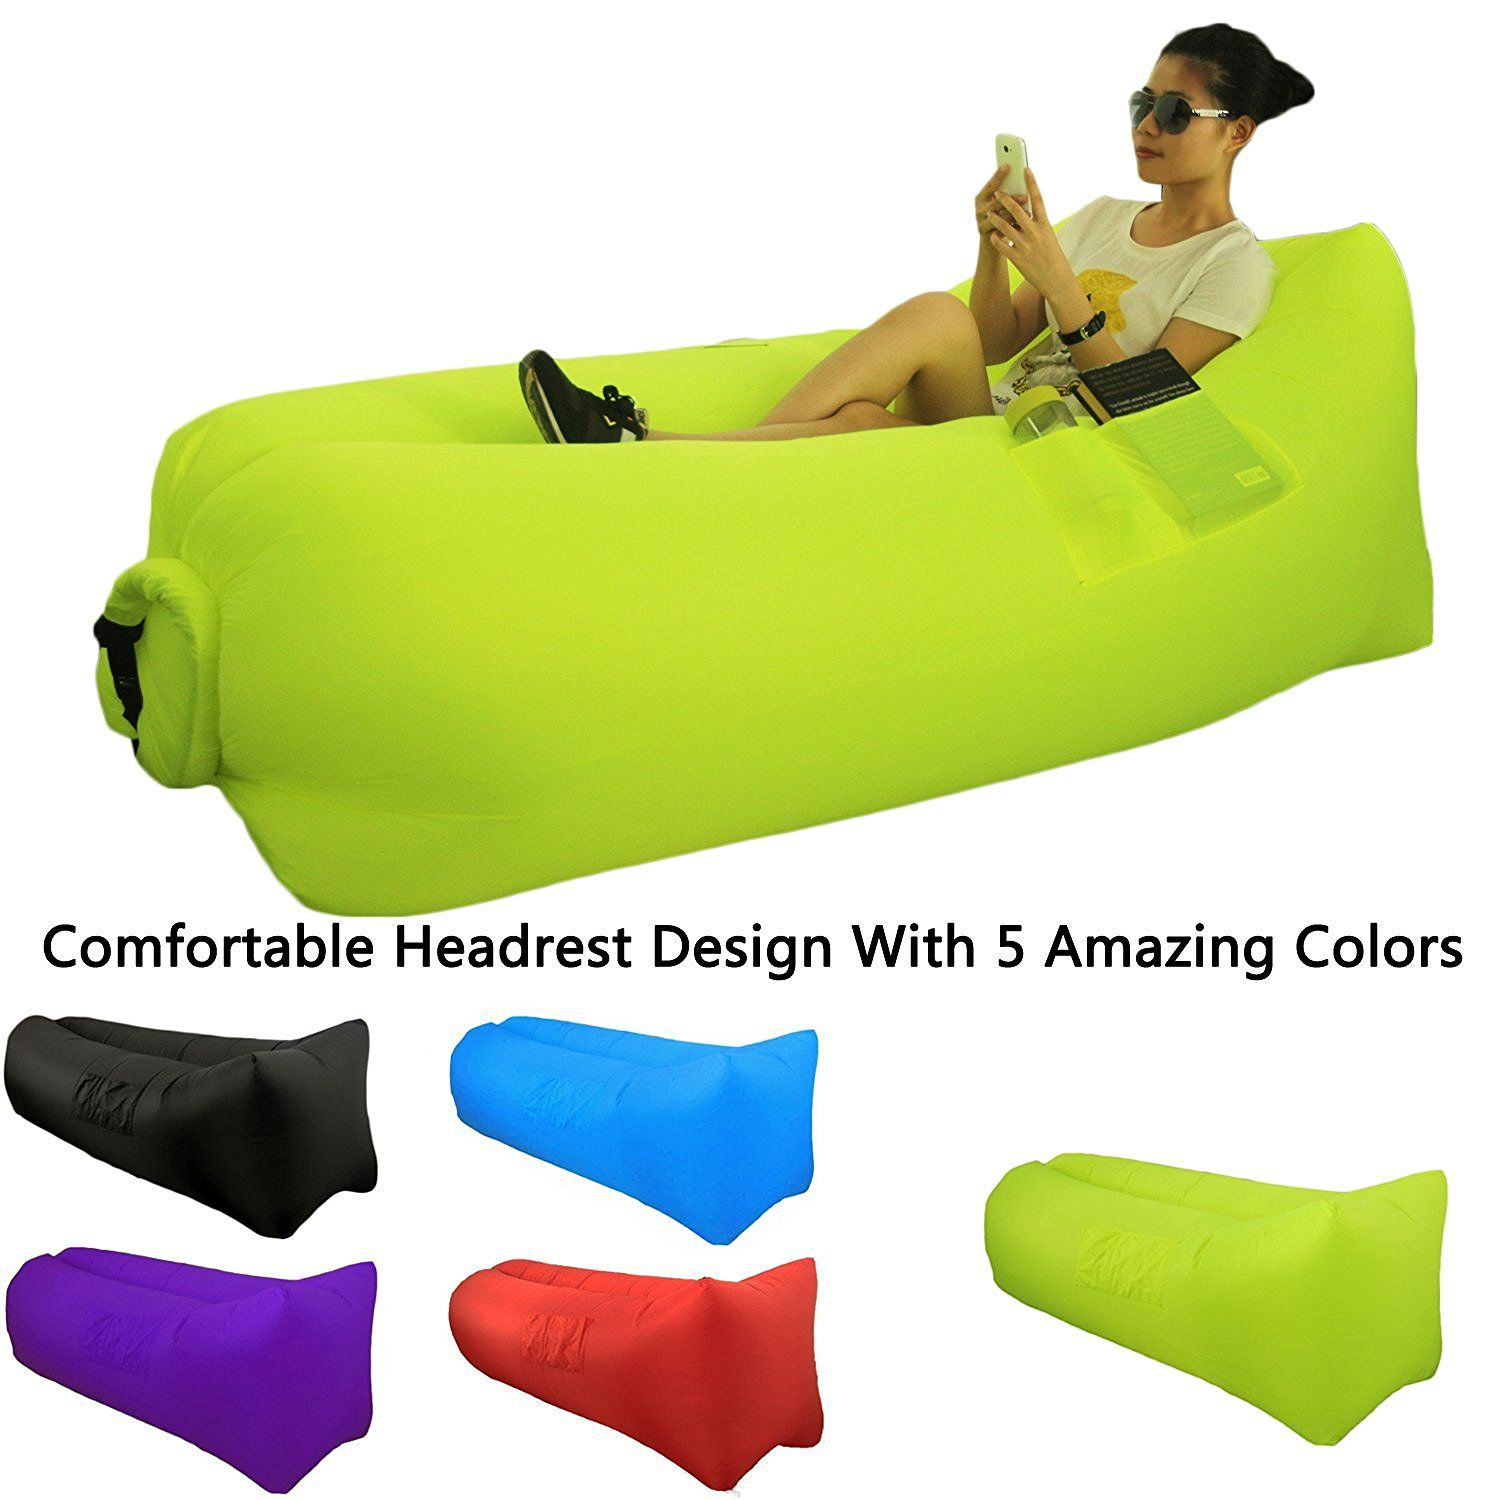 Camping Accessories Great Home Inflatable Lounger Sofa Air Sleeping Bag Beach Lounge Chair Bean Bag Beach Lounge Chair Inflatable Lounger Camping Accessories